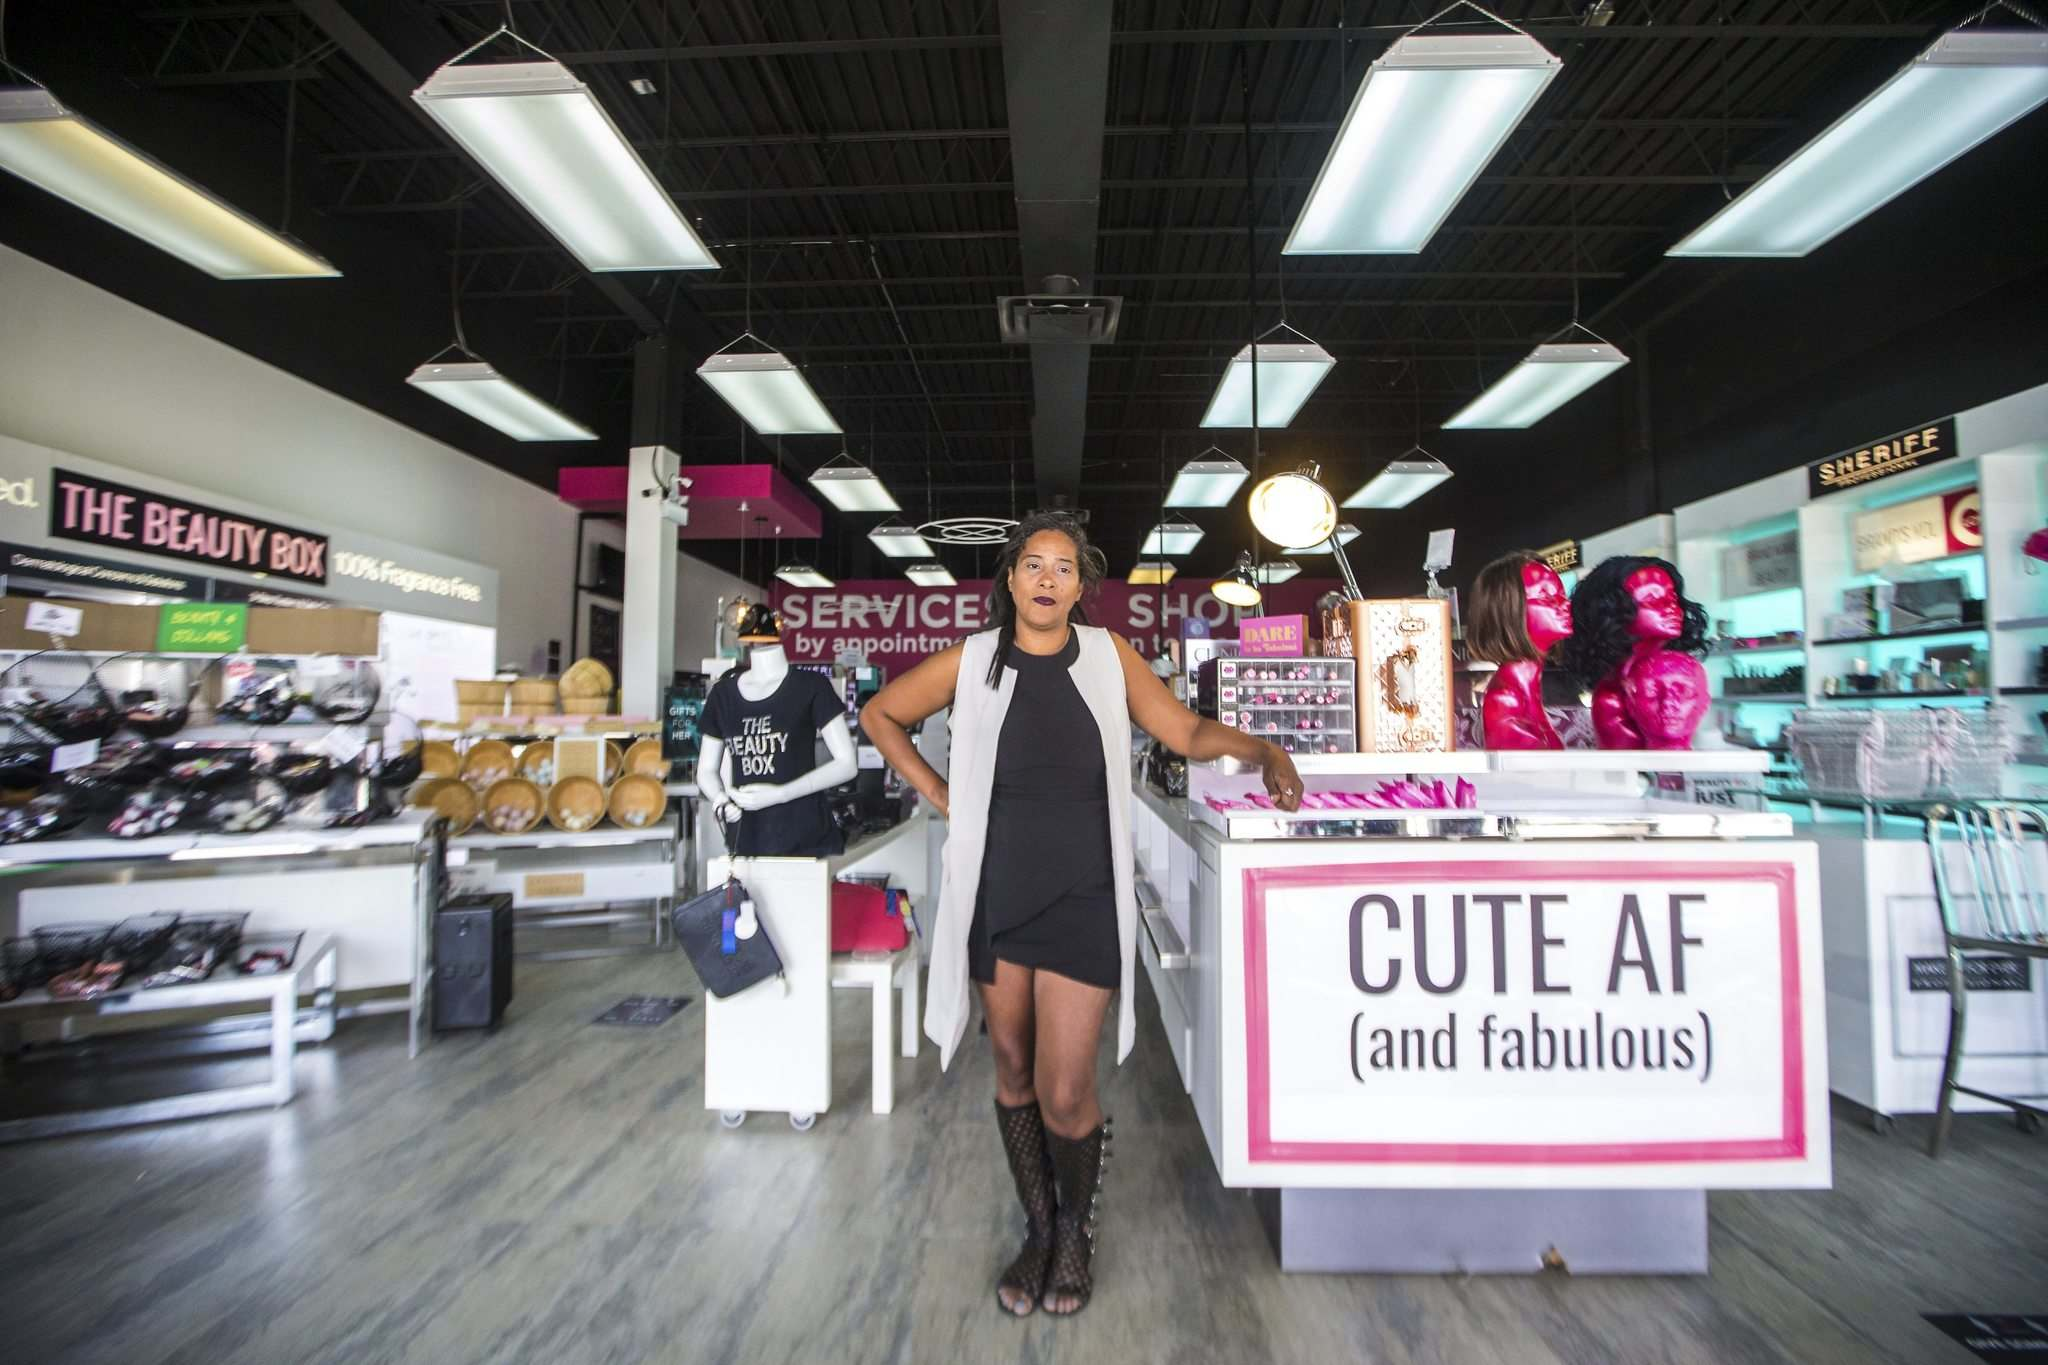 Beauty Box owner Carla Deroy says she doesn't know if things will ever be normal for her business again. (Mikaela MacKenzie / Winnipeg Free Press)